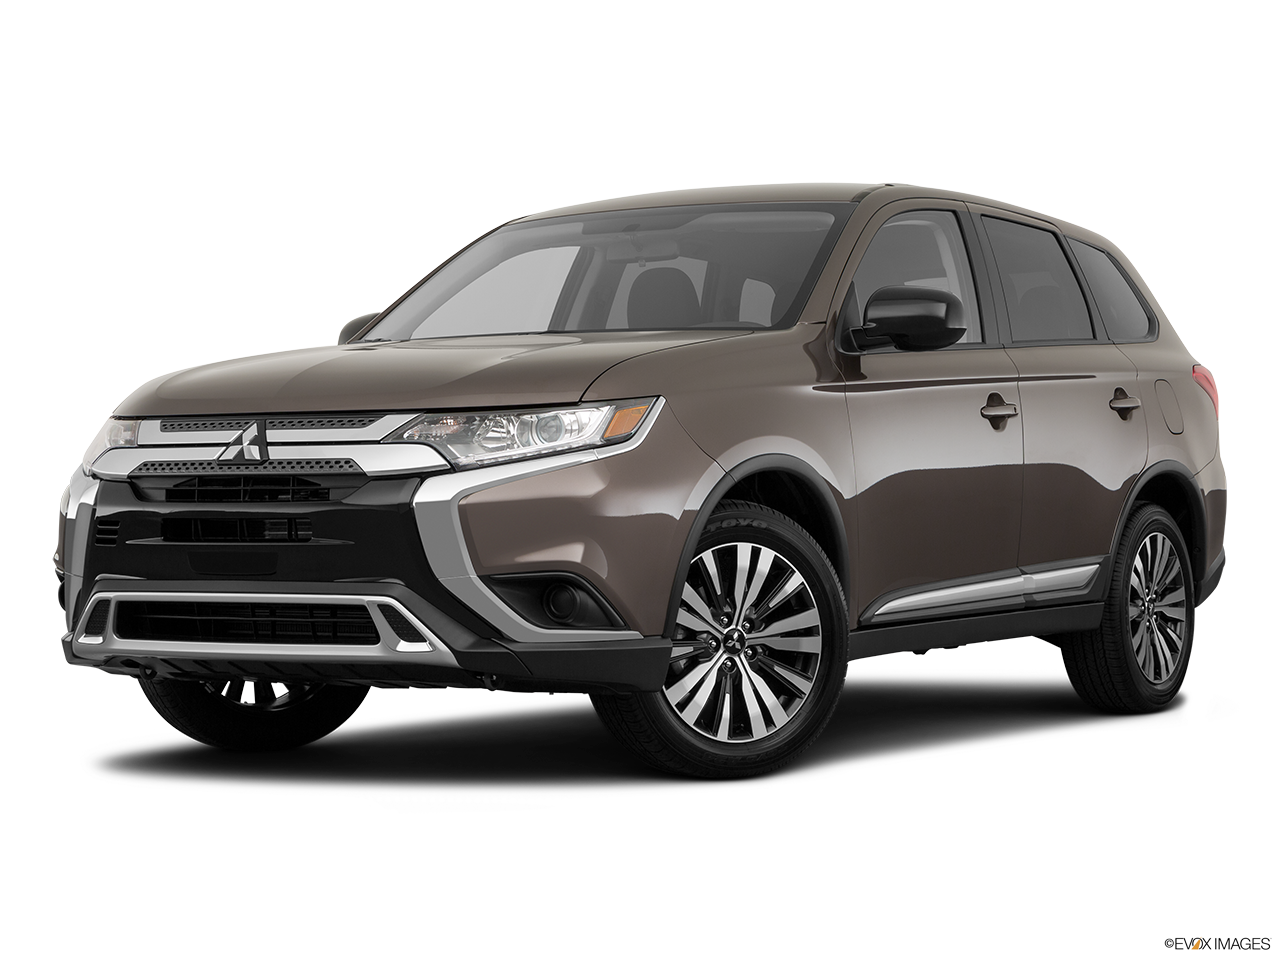 Three quart view of the Mitsubishi Outlander PHEV